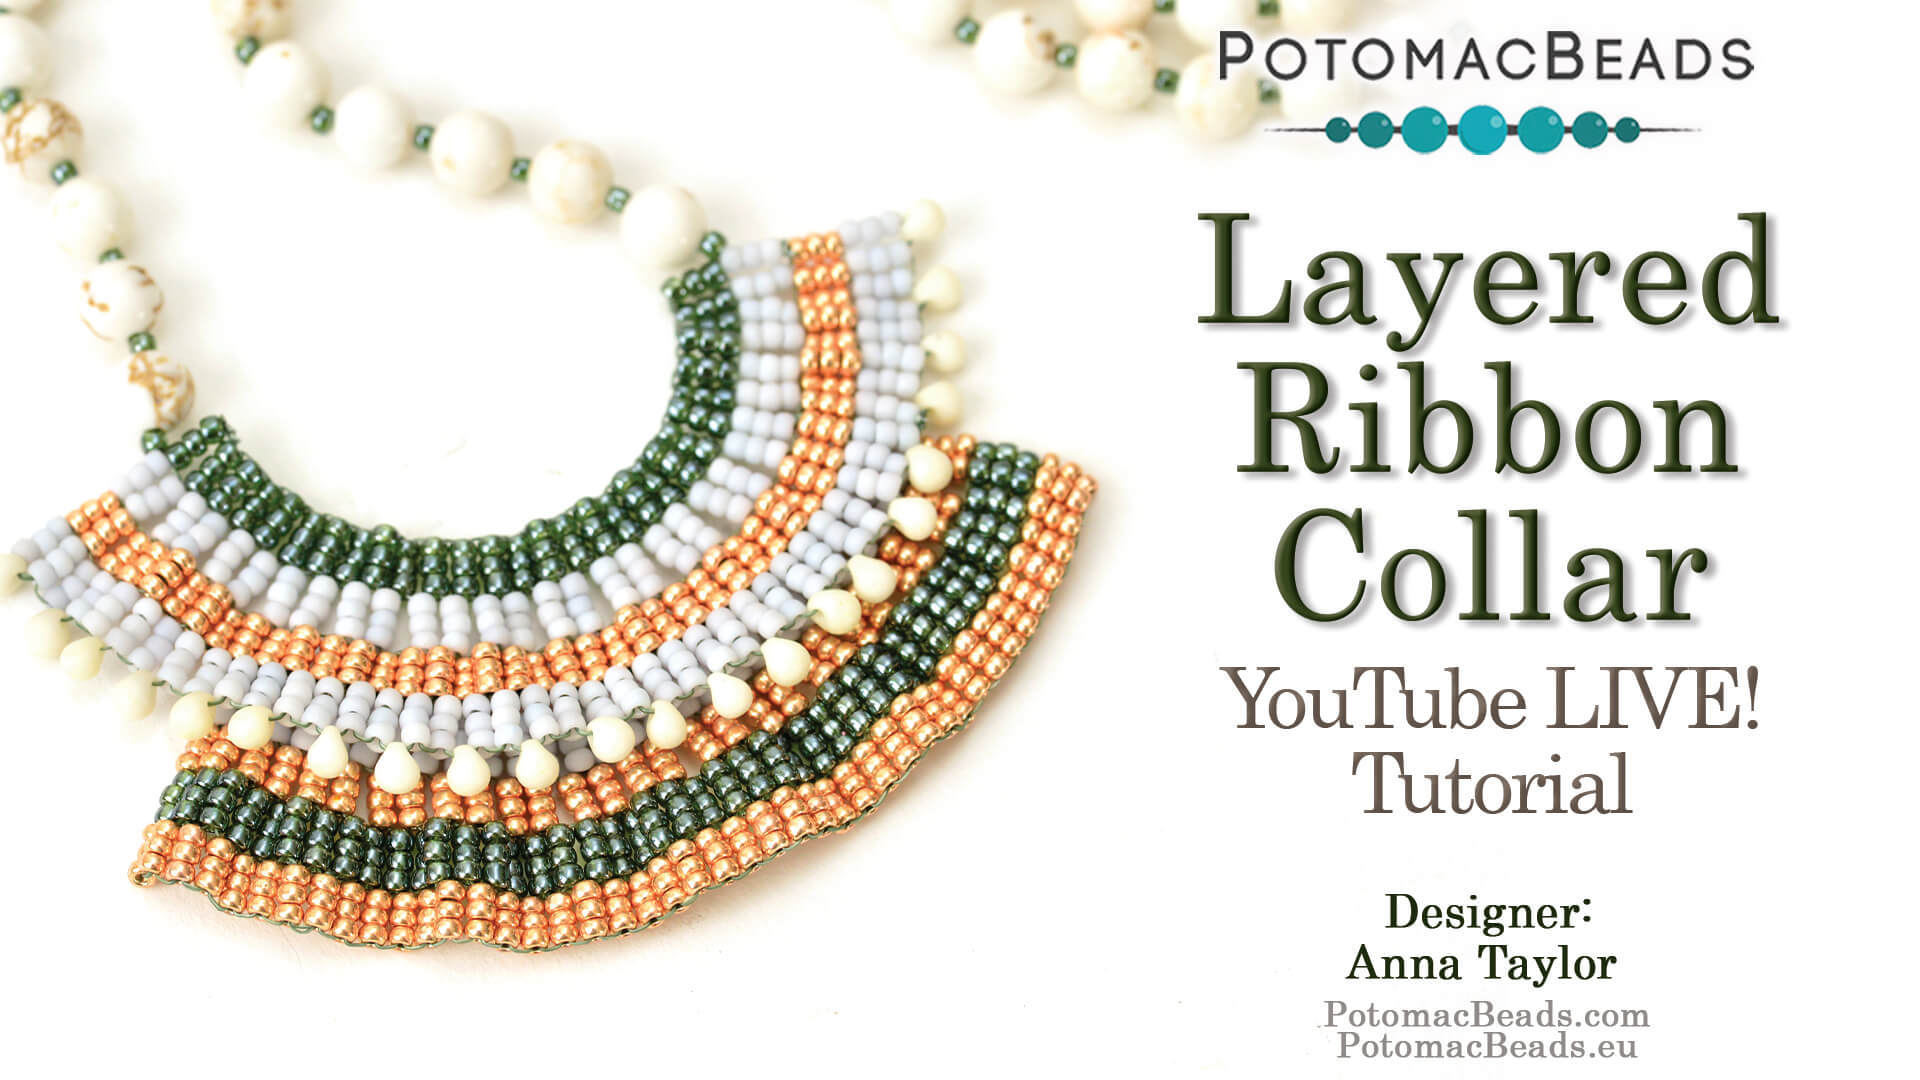 How to Bead Jewelry / Videos Sorted by Beads / Gemstone Videos / Layered Ribbon Collar Tutorial